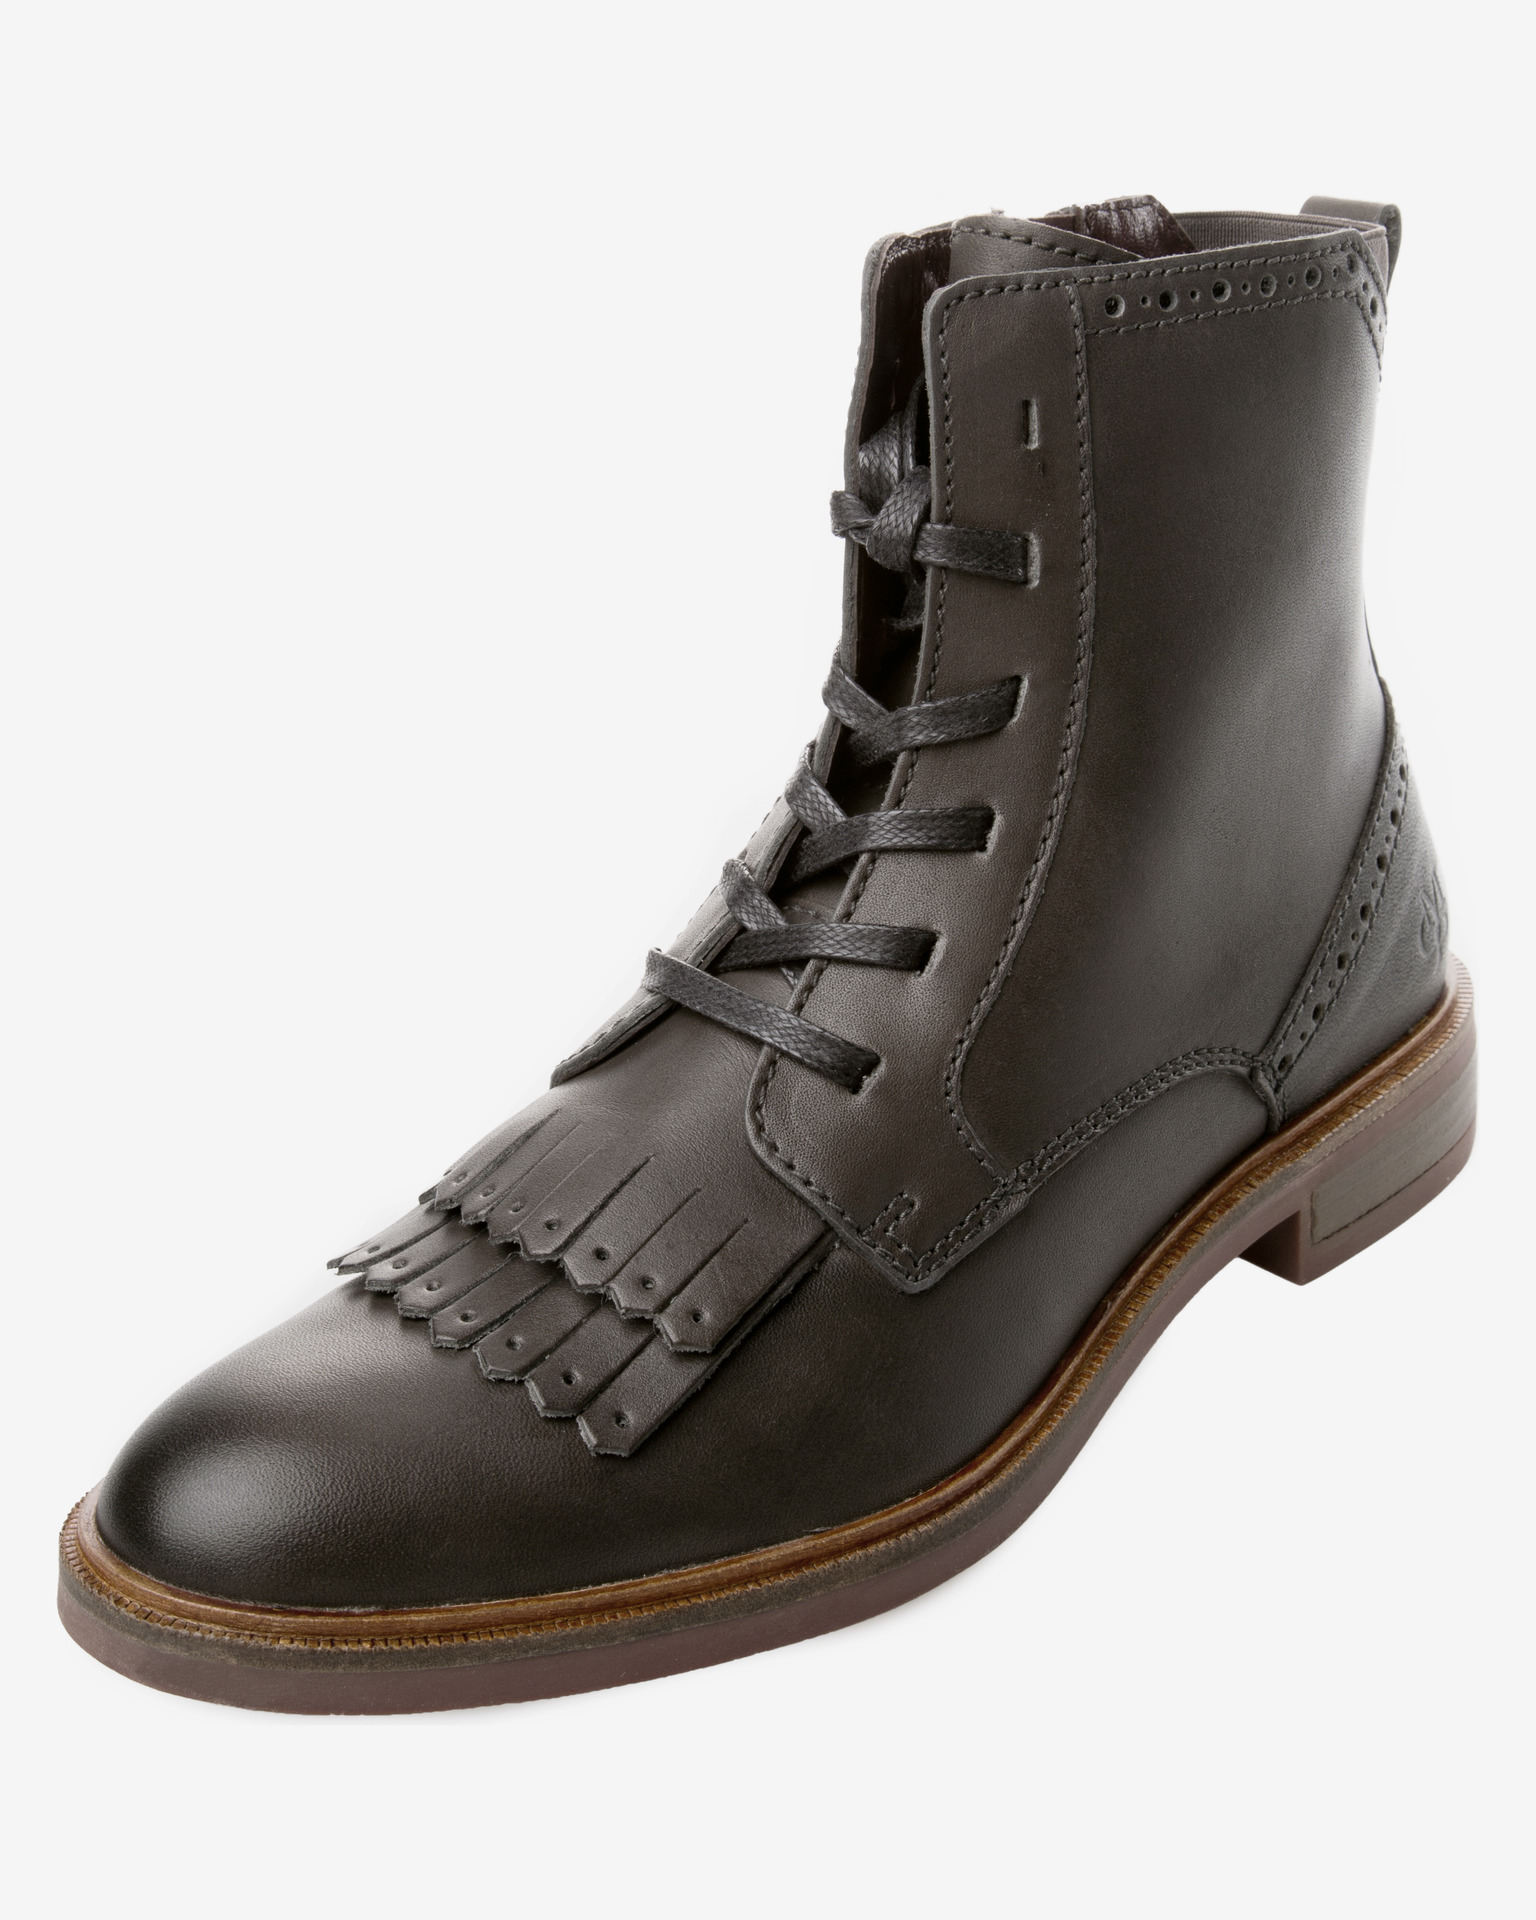 marc o polo ankle boots. Black Bedroom Furniture Sets. Home Design Ideas